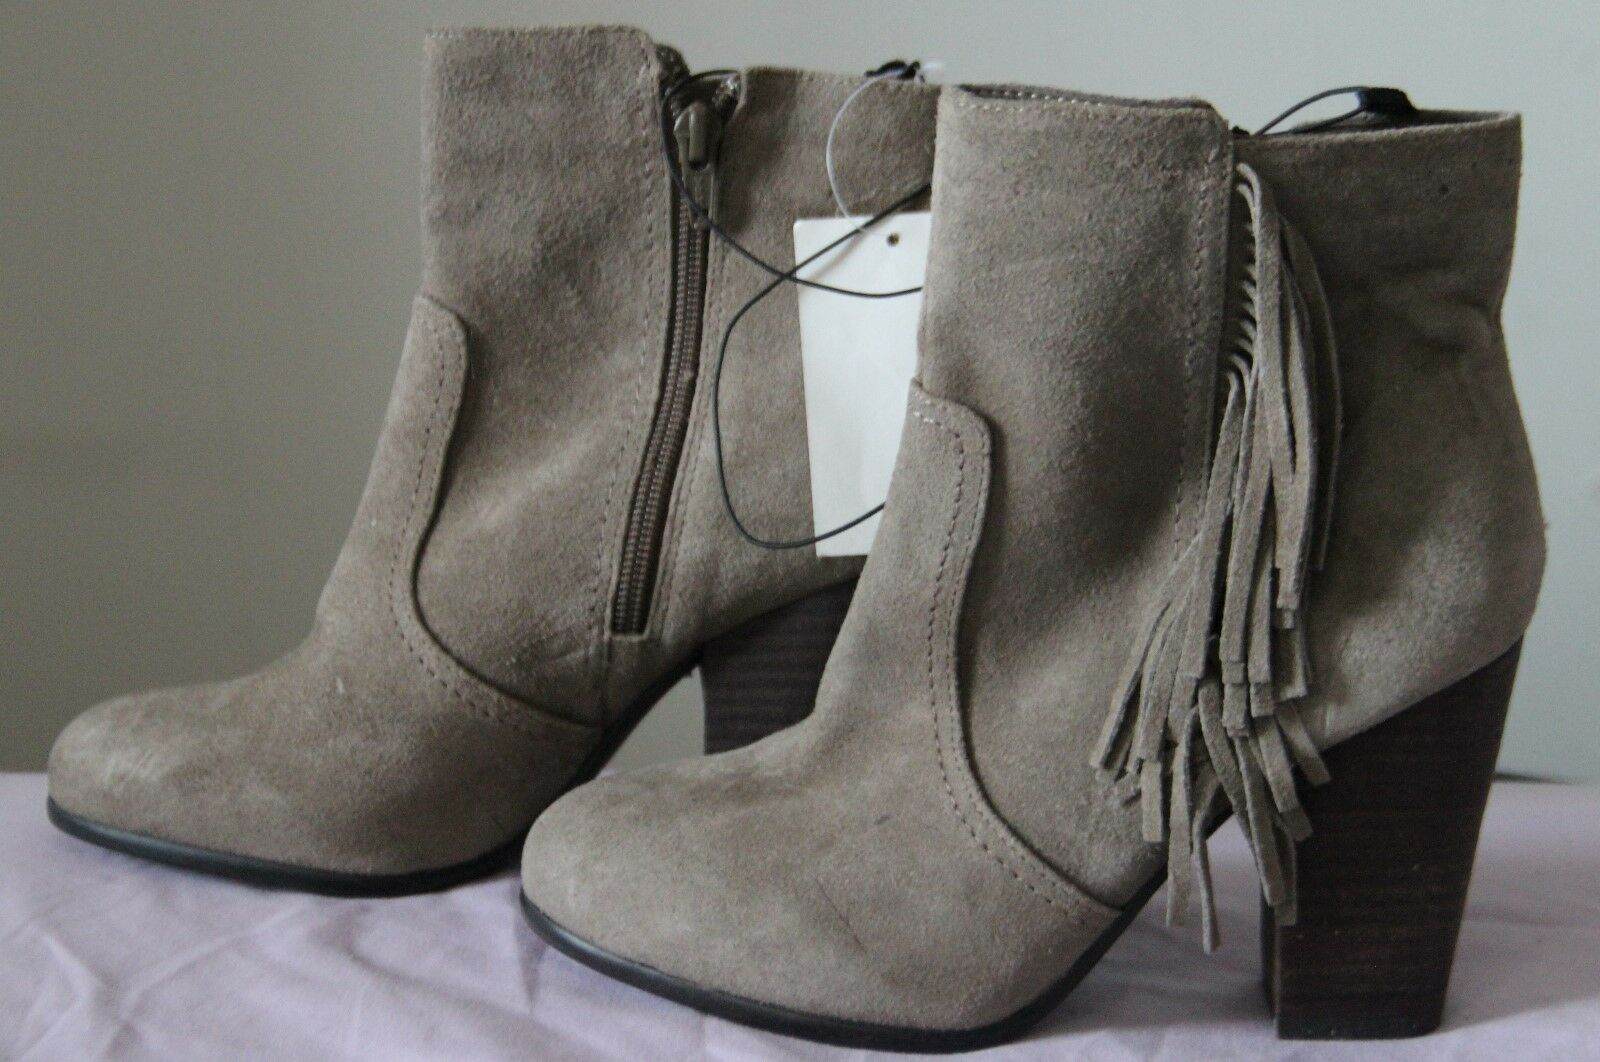 H&M Taupe Sz Suede Fringe Ankle Stiefel - Sz Taupe US 5.5/EUR36 (NWT) 24932a